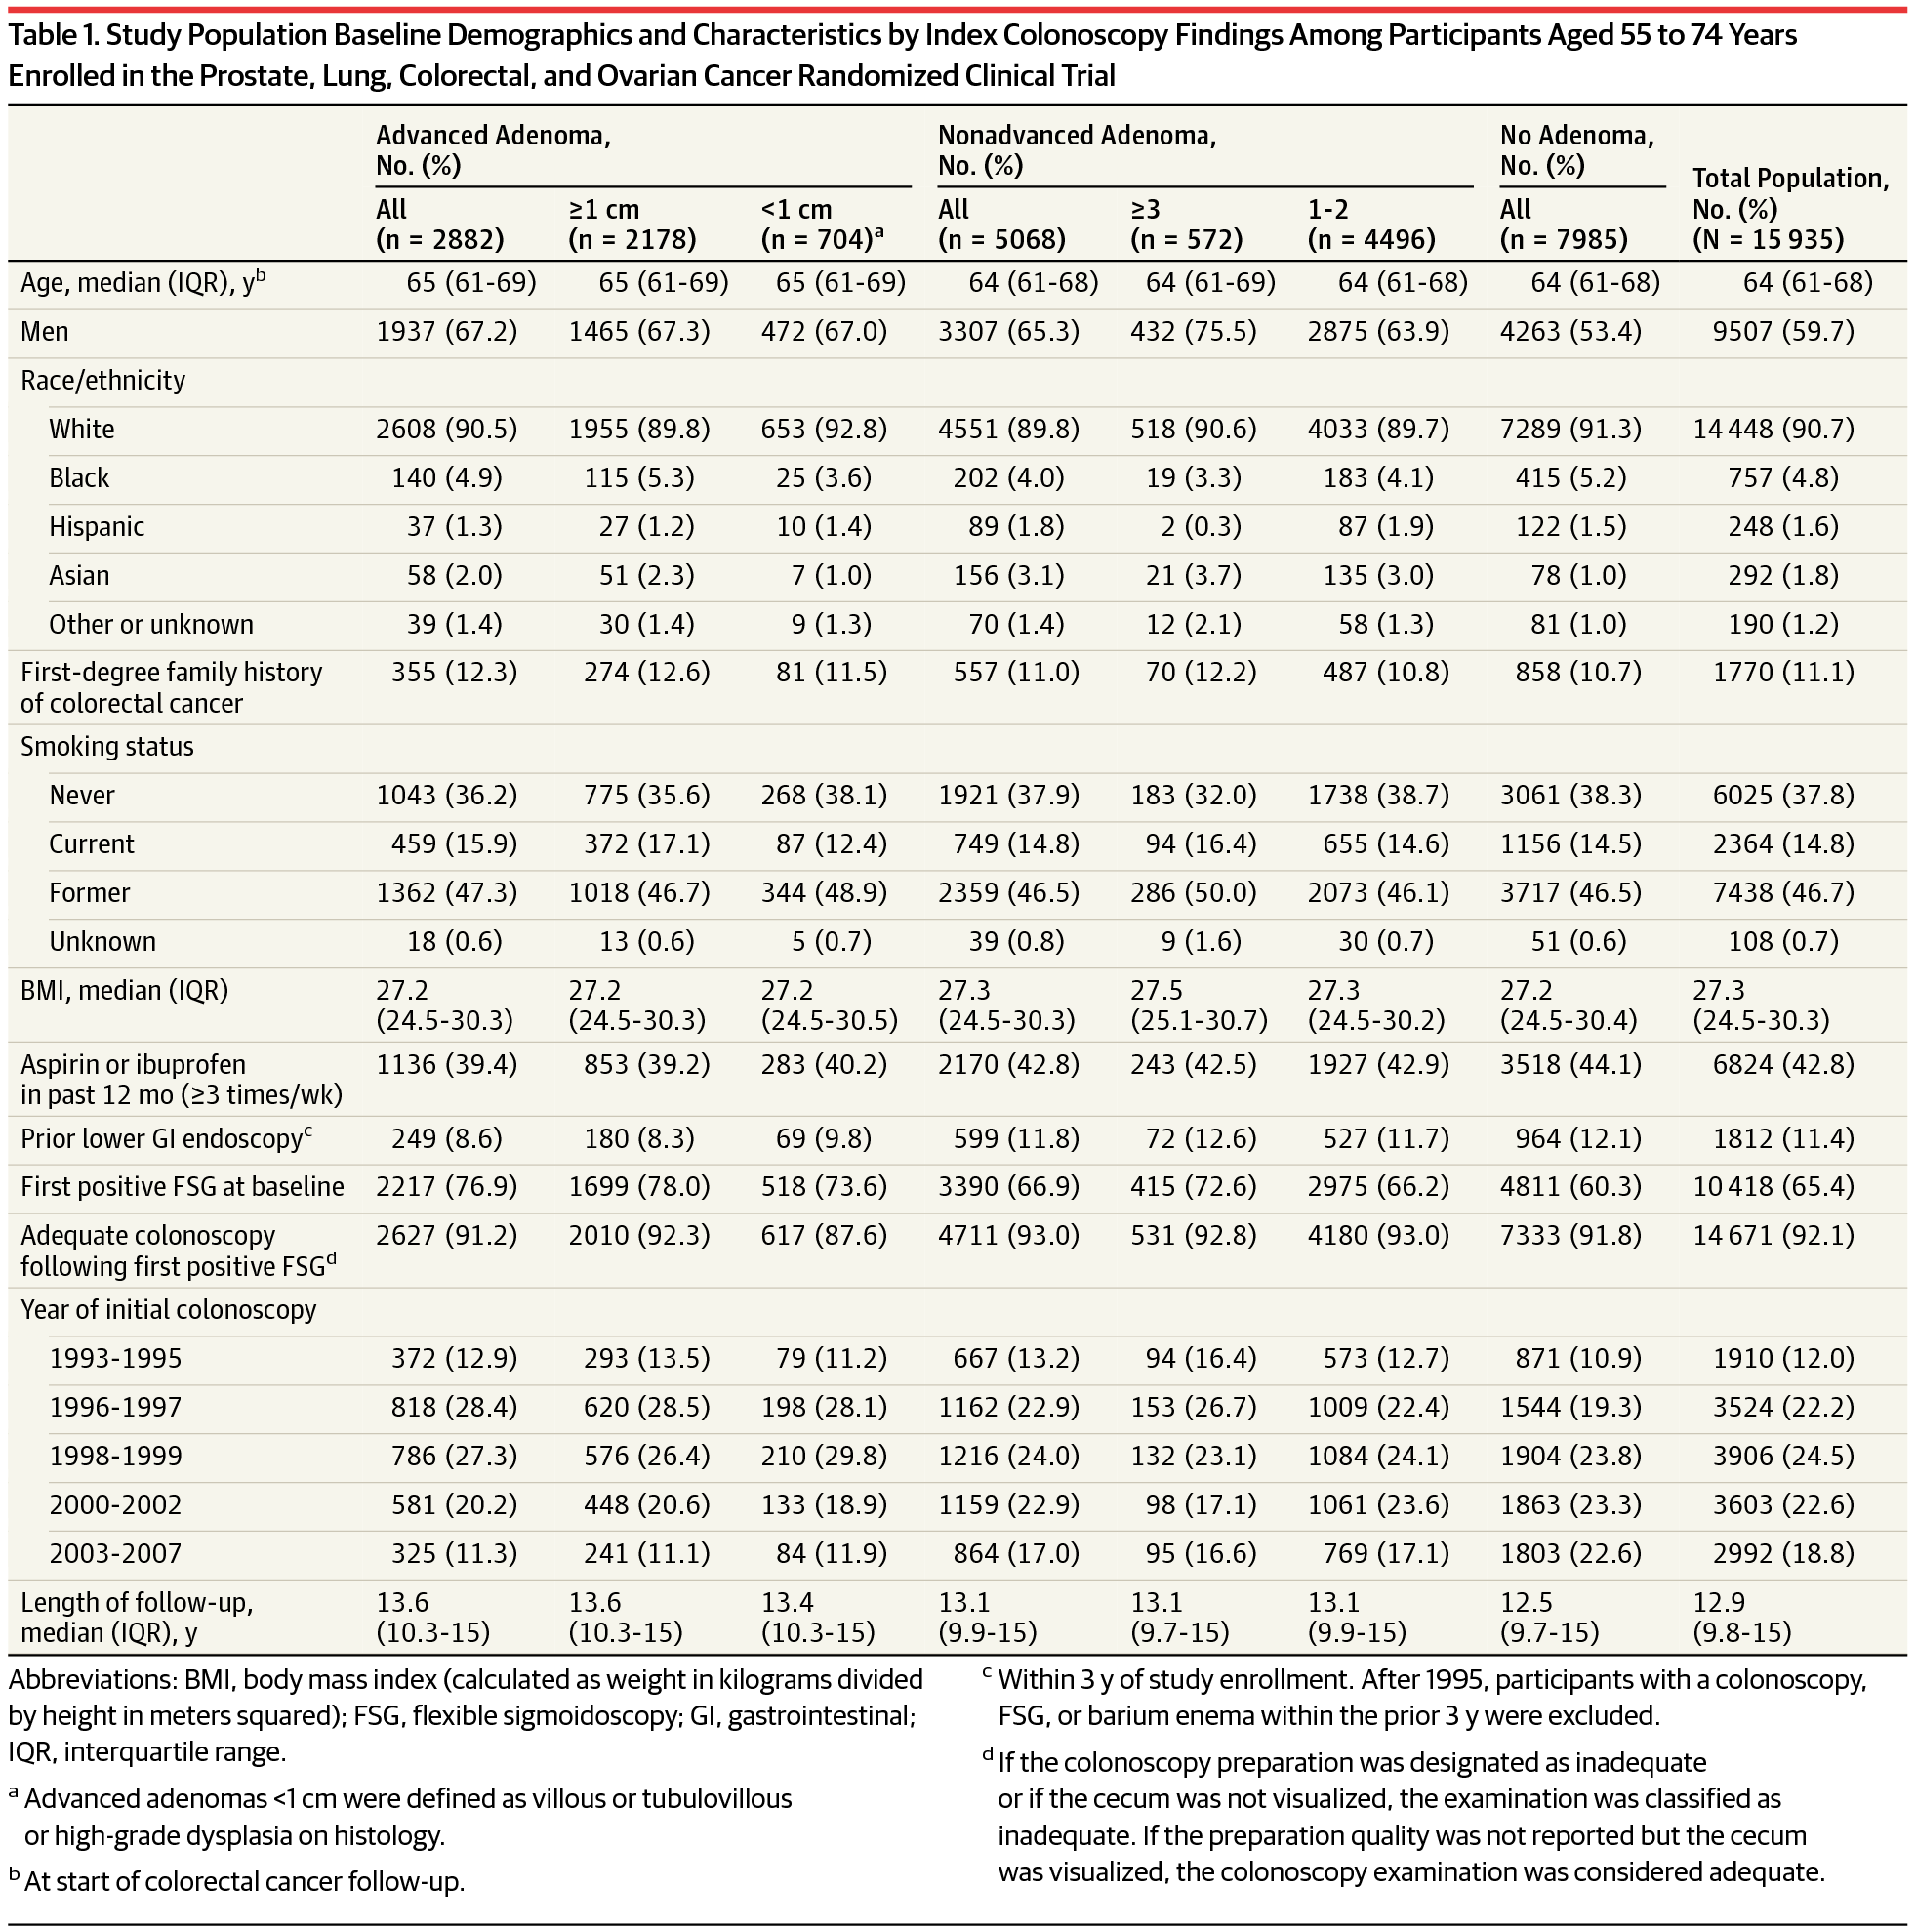 Study Population Baseline Demographics And Characteristics By Index Colonoscopy Findings Among Participants Aged 55 To 74